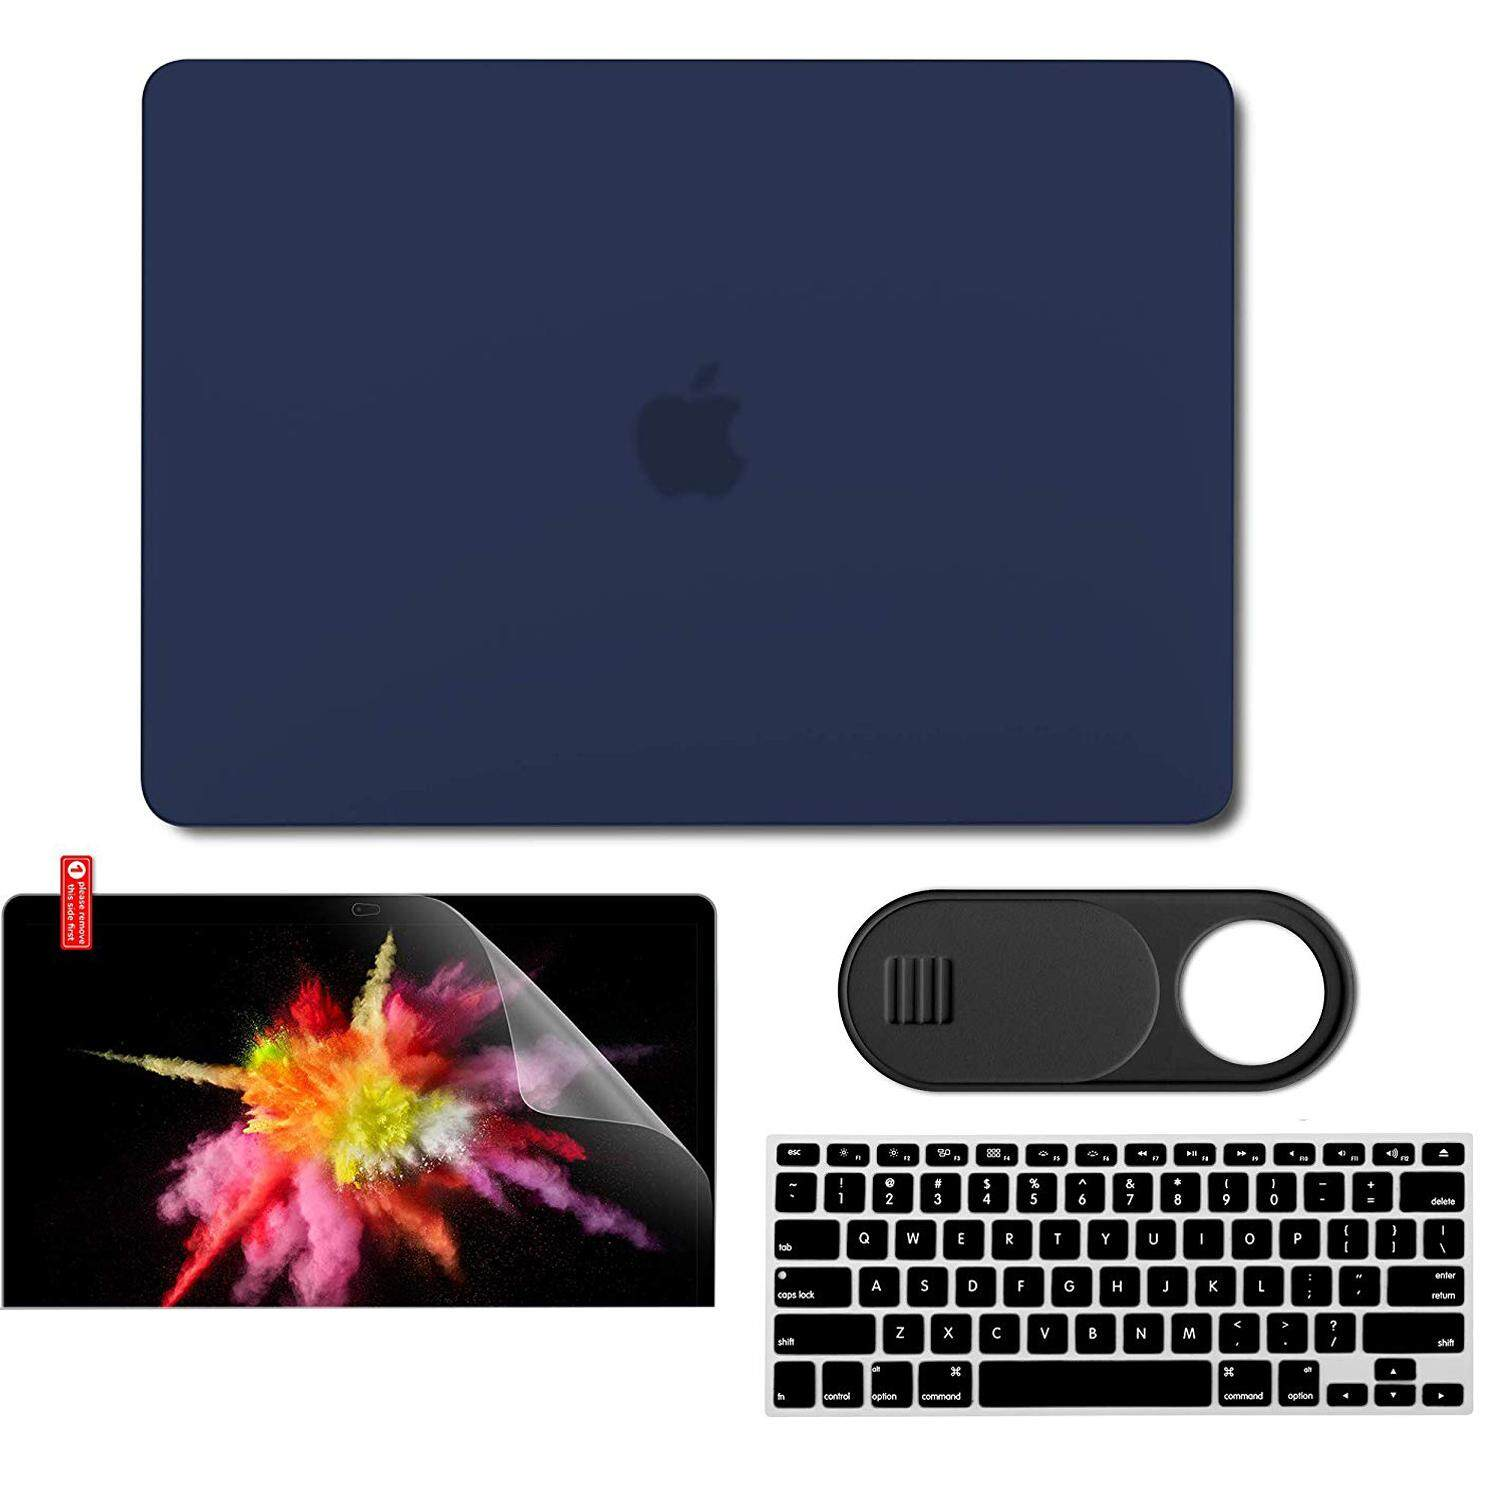 MacBook Air 13 Inch (Models: A1369 & A1466, Older Version 2010-2017 Release) Plastic Hard Case & Keyboard Cover & (Offer a variety of selection of accessories)